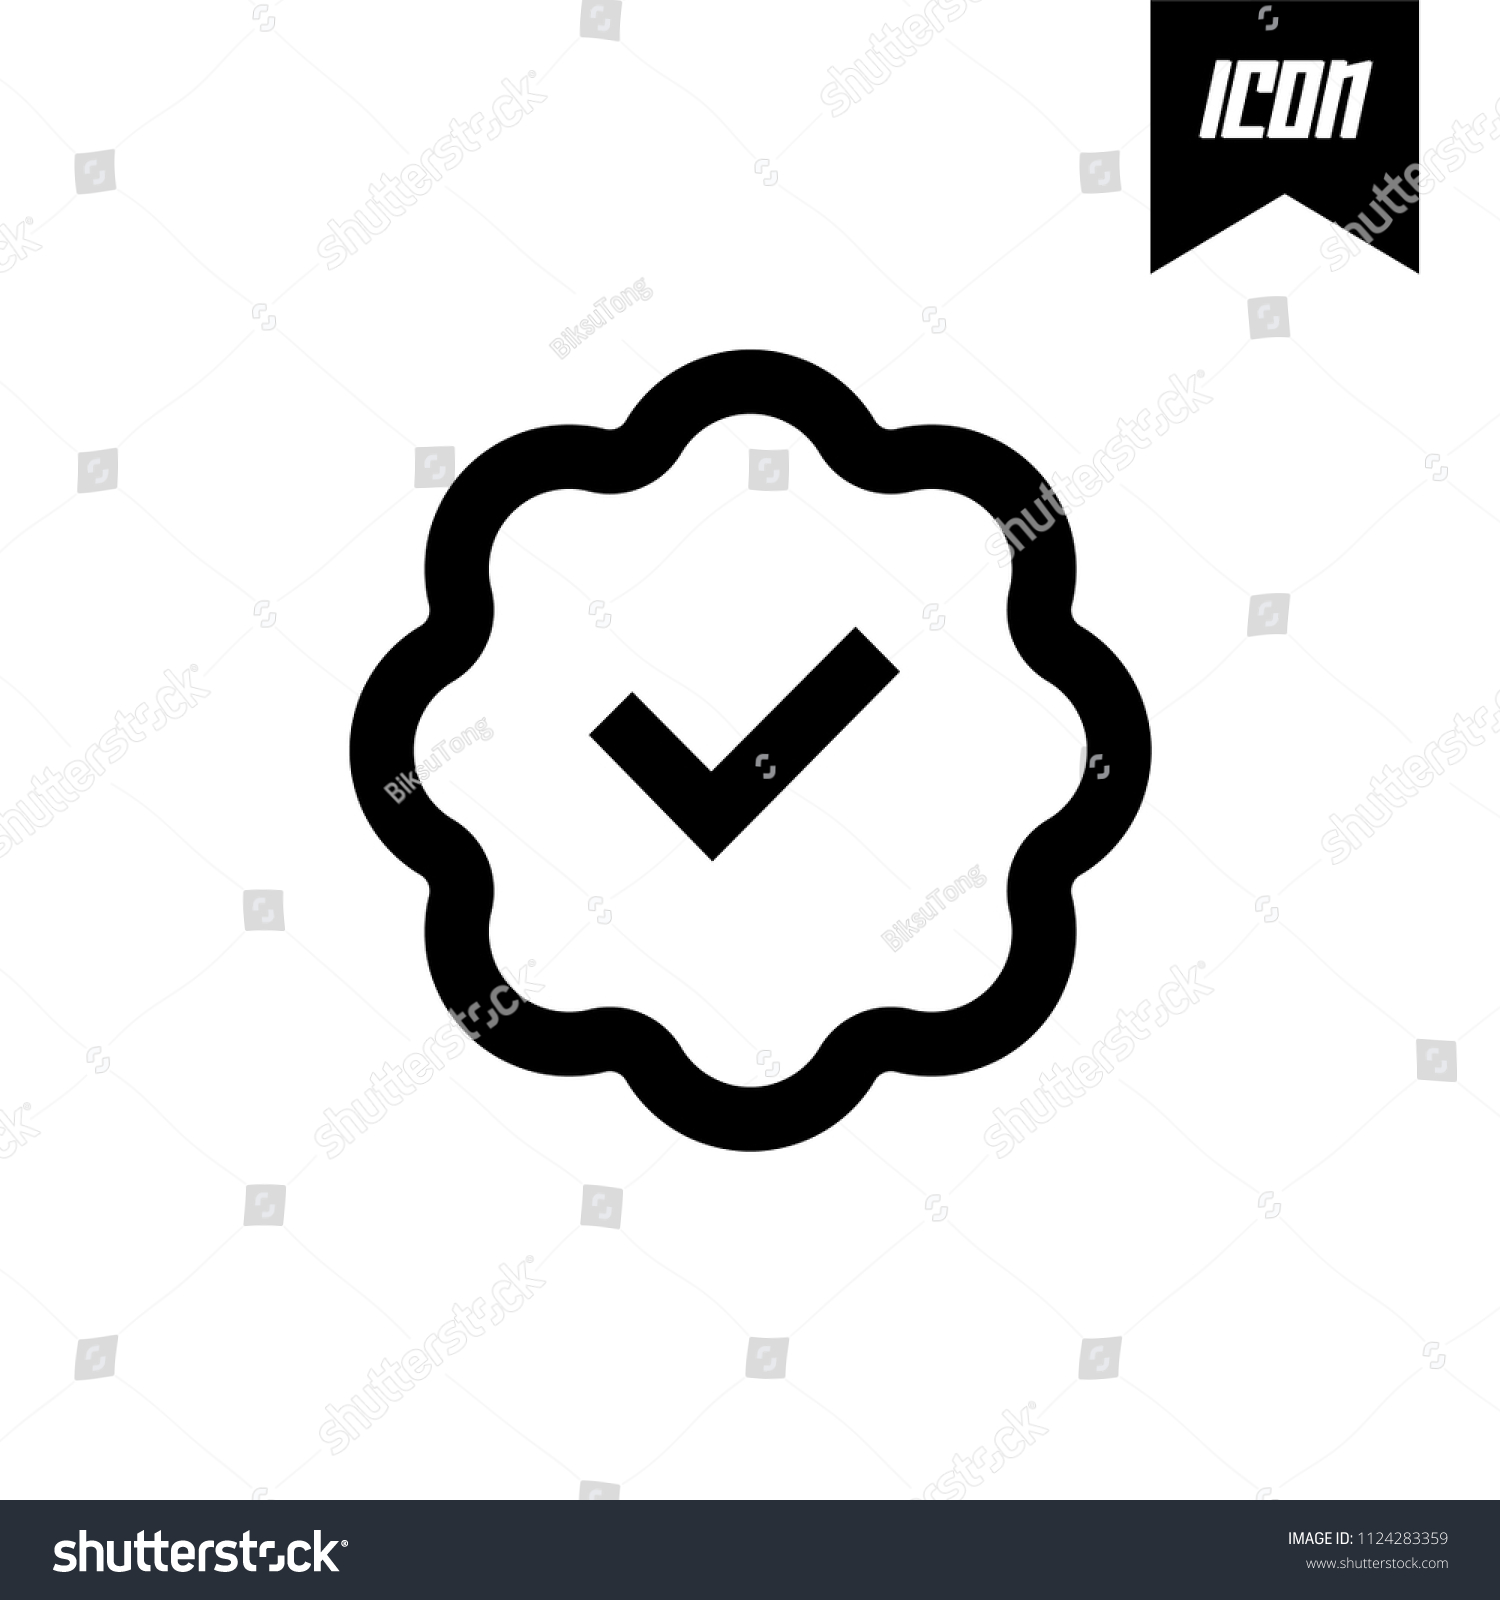 Verified Account Icon Flat Design Vector Stock Vector Royalty Free